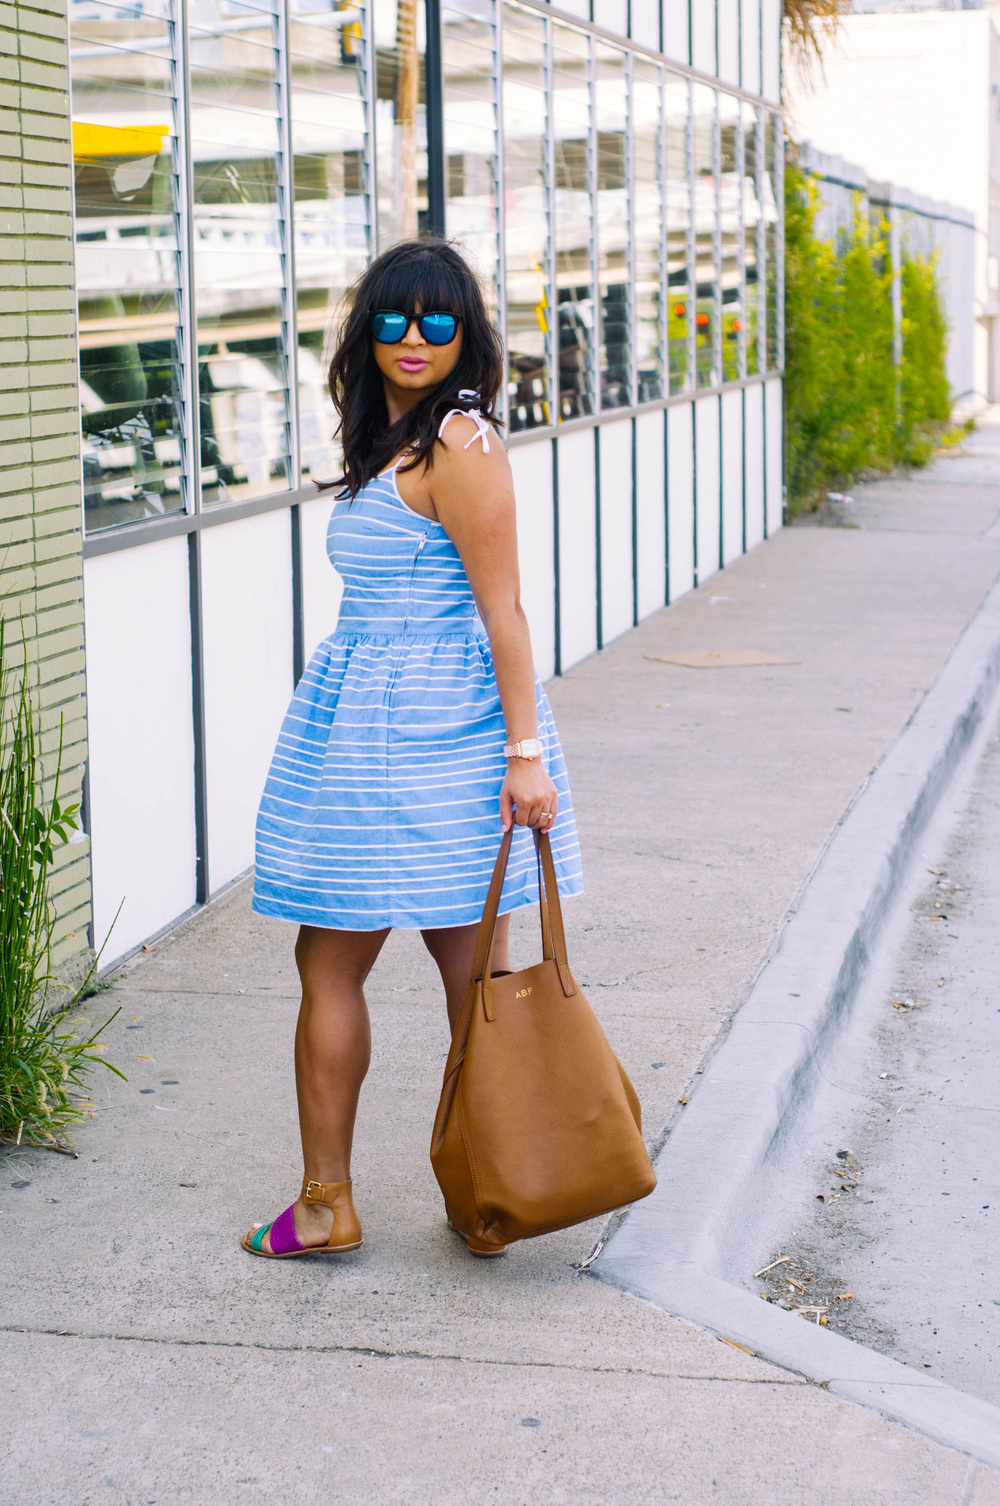 1a6bdf6a5fa This dress makes me feel so flirty and is a necessity to survive Texas  heat. Here s looking at you